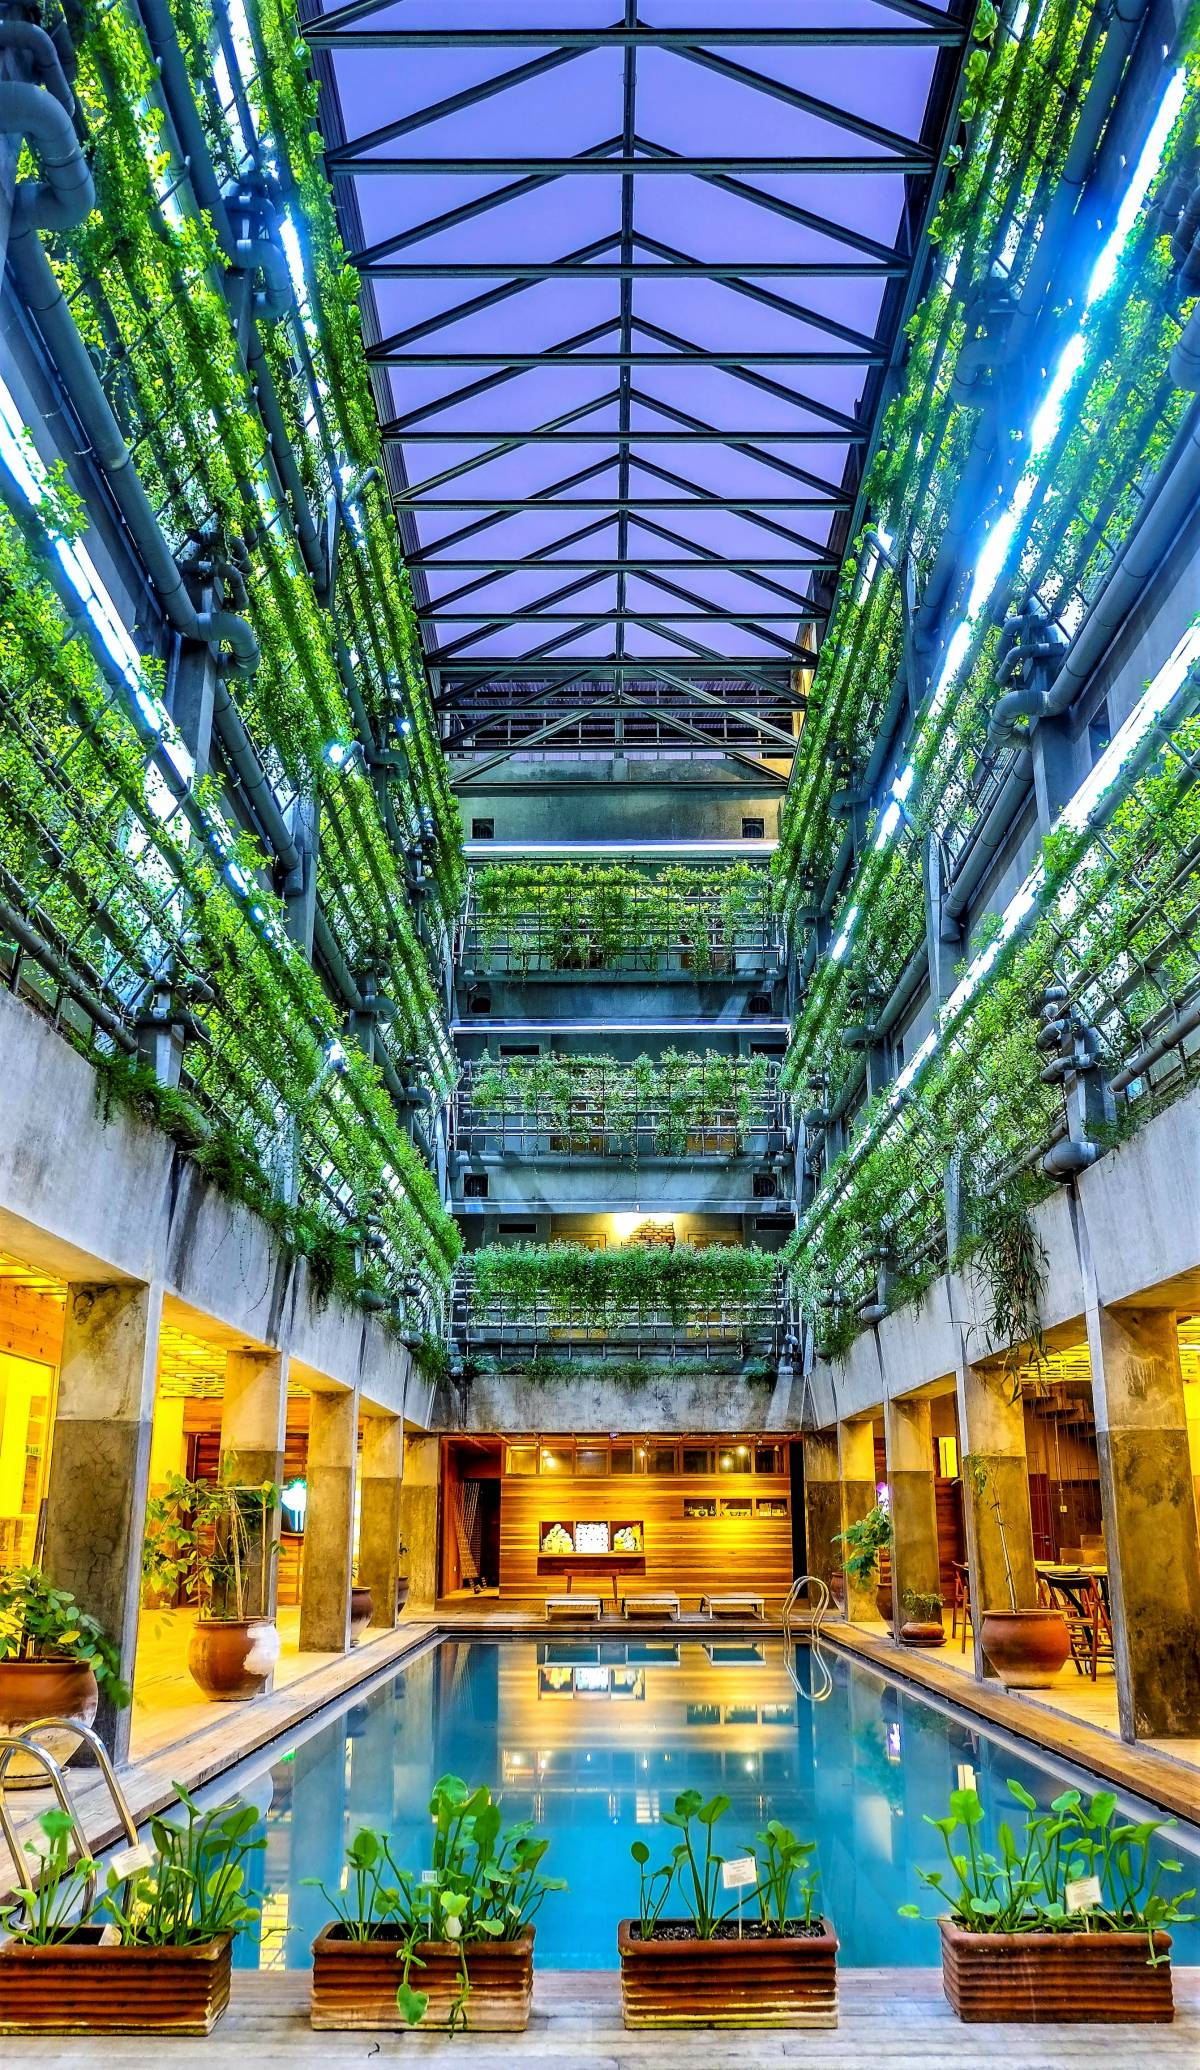 Greenhost Hotel Continues to Incorporate Environmentally-Friendly Initiatives in Daily Operations